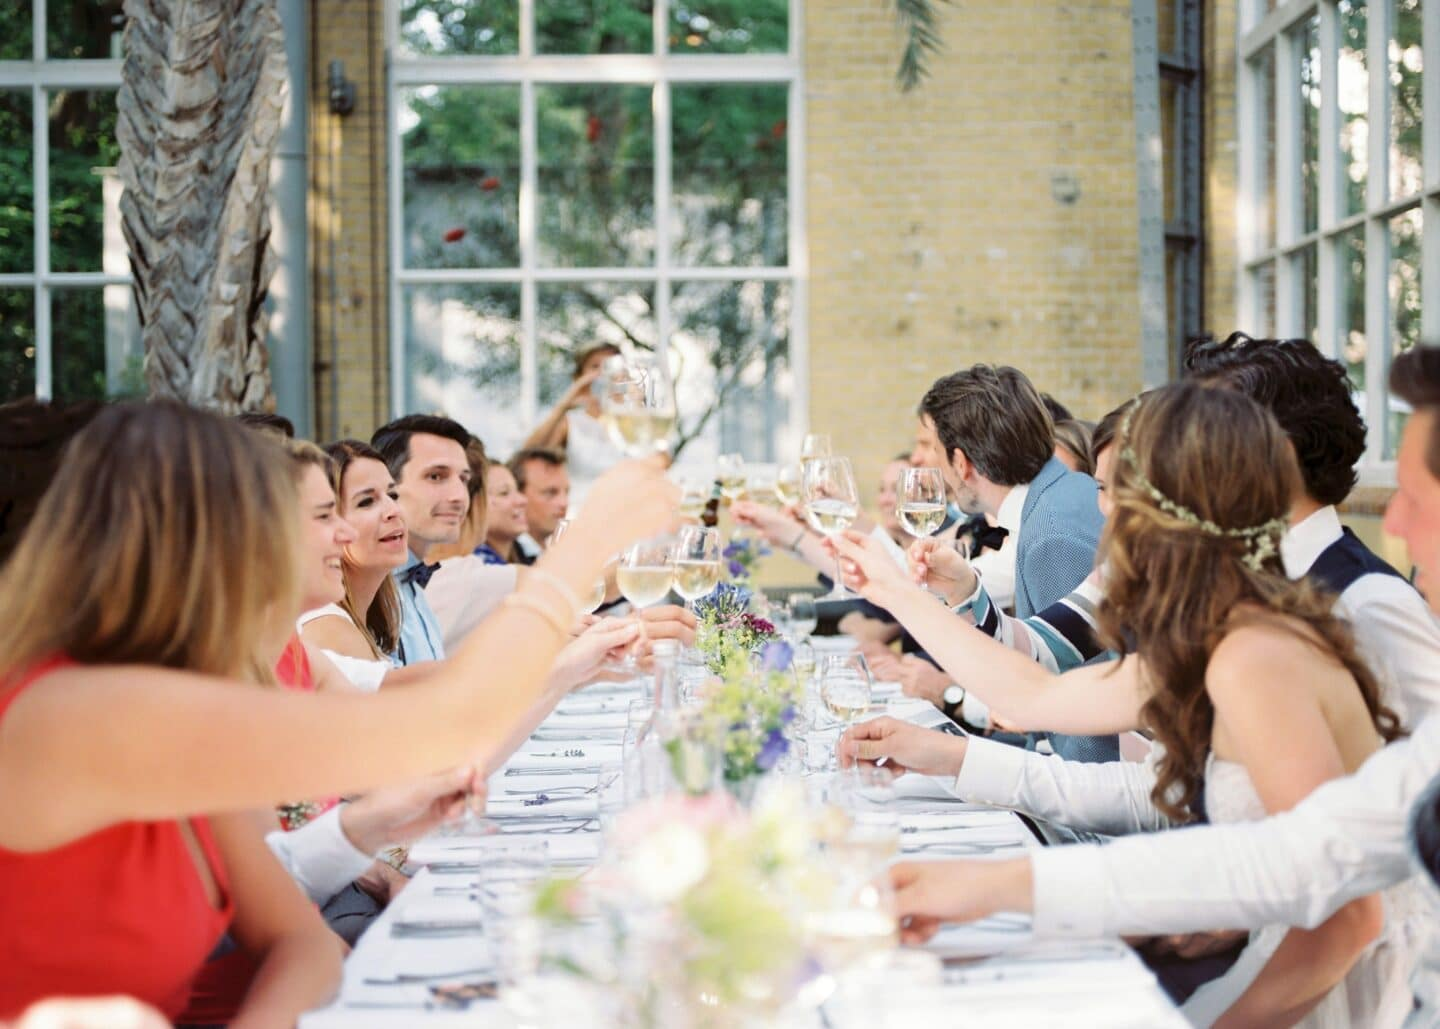 Have you ever crashed a wedding?! Make sure you do before you die! Hilarious bucket list idea